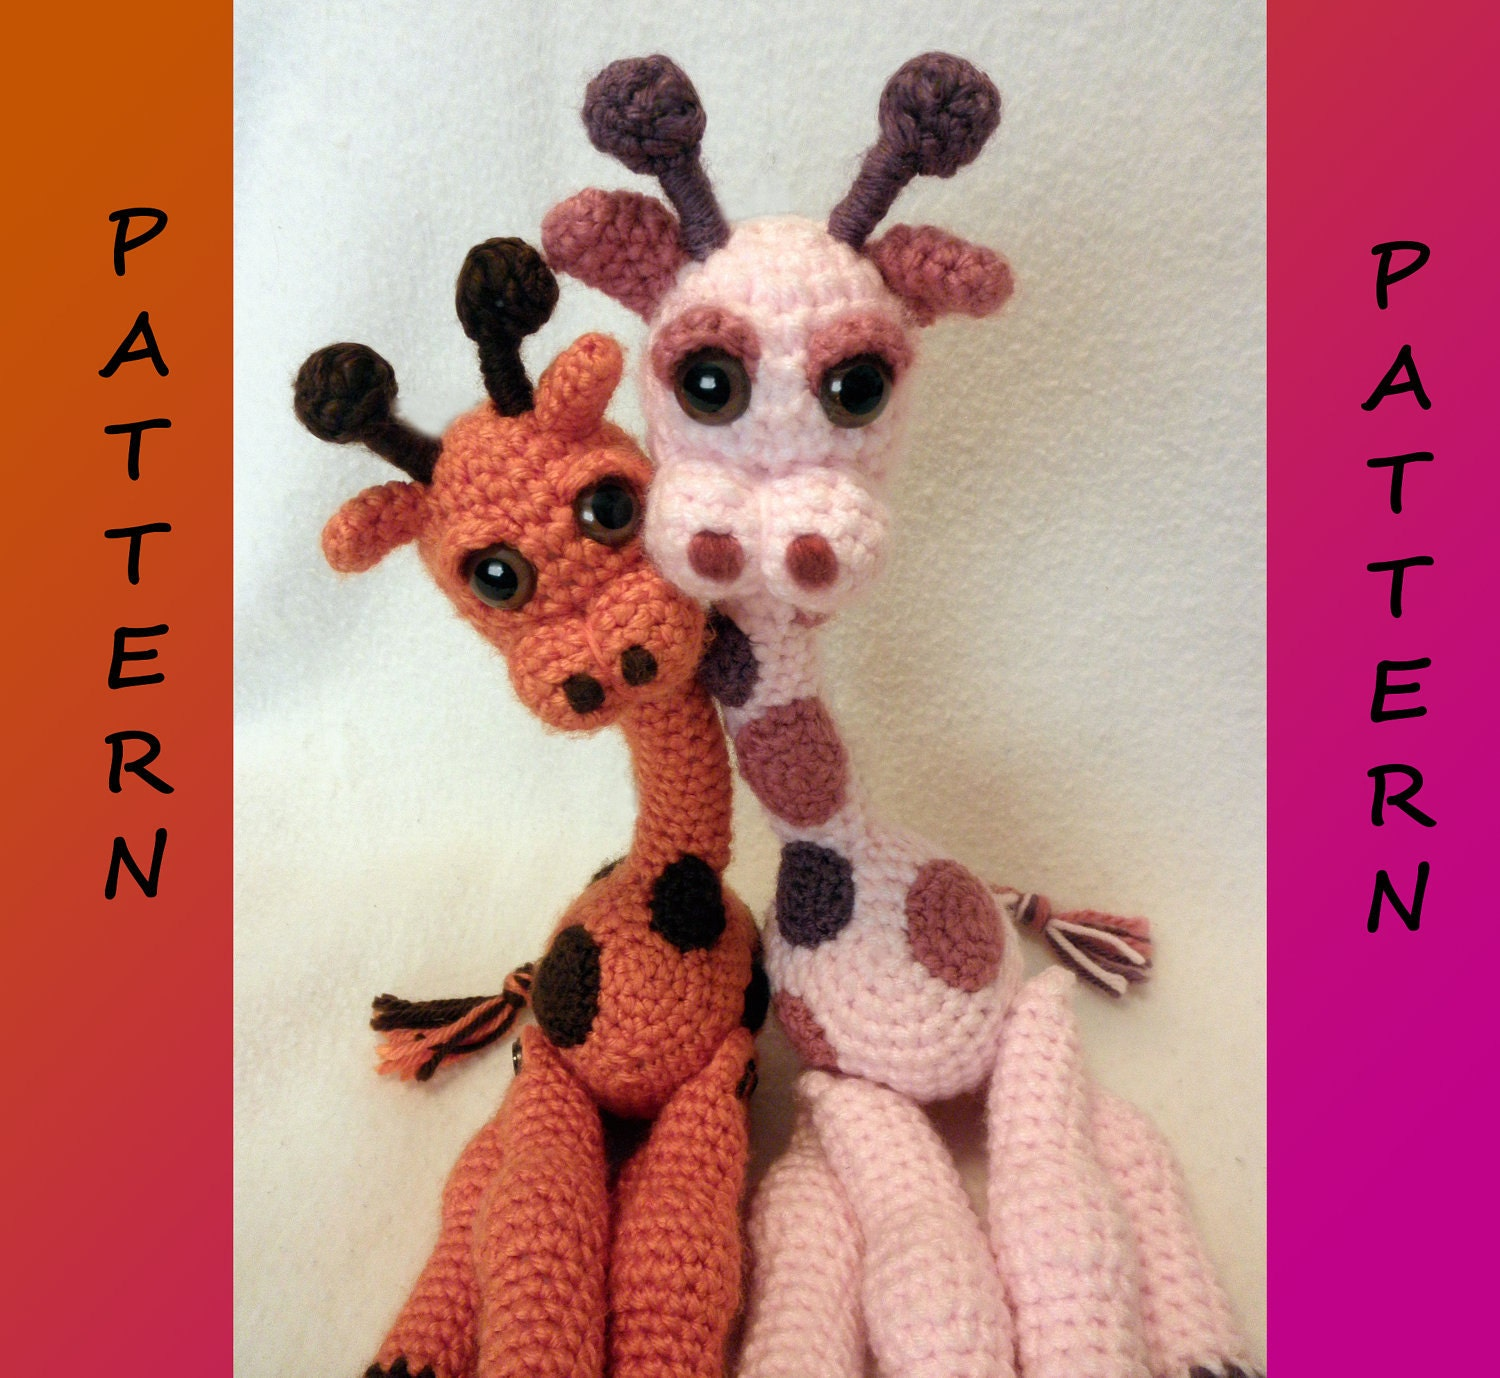 GIRAFFE ANIMAL PRINT CROCHET AFGHAN PATTERN GRAPH | CozyConcepts